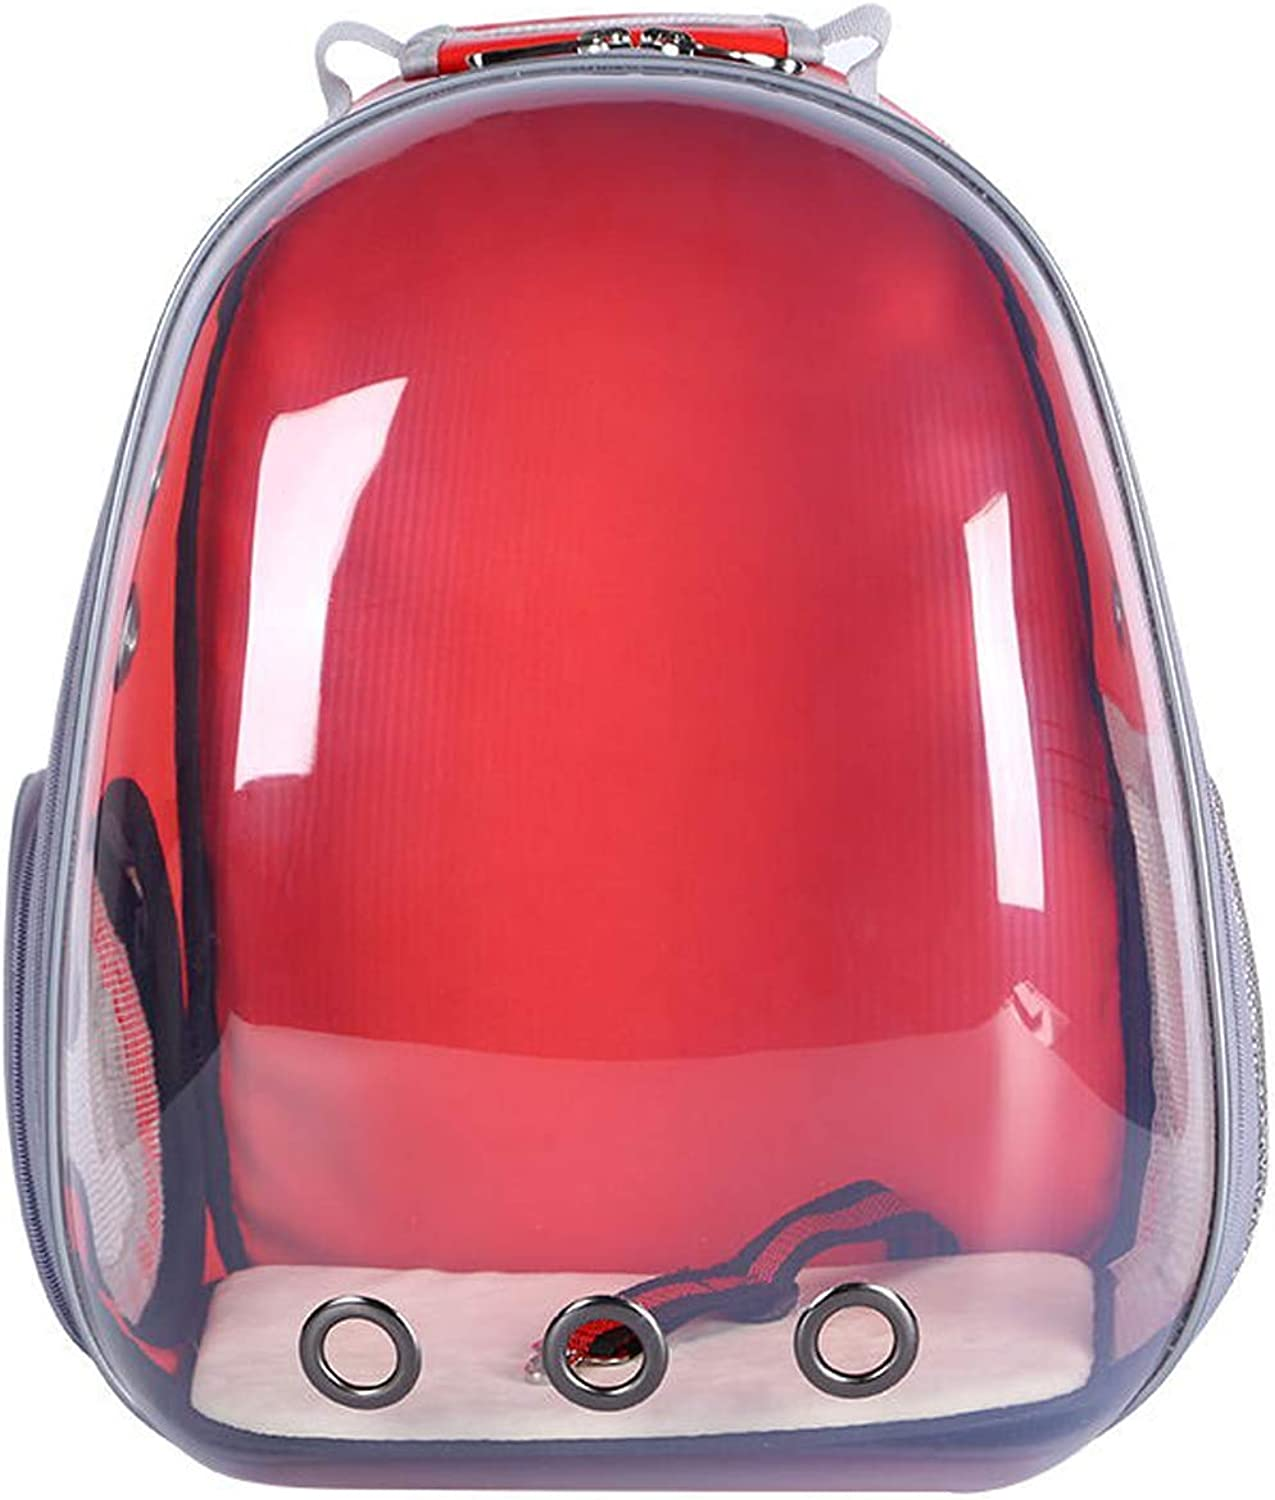 MARIS Portable Pet Travel Breathable Backpack,Space Capsule Bubble Design,Waterproof Handbag Backpack for Cat and Small Dog (bluee),red